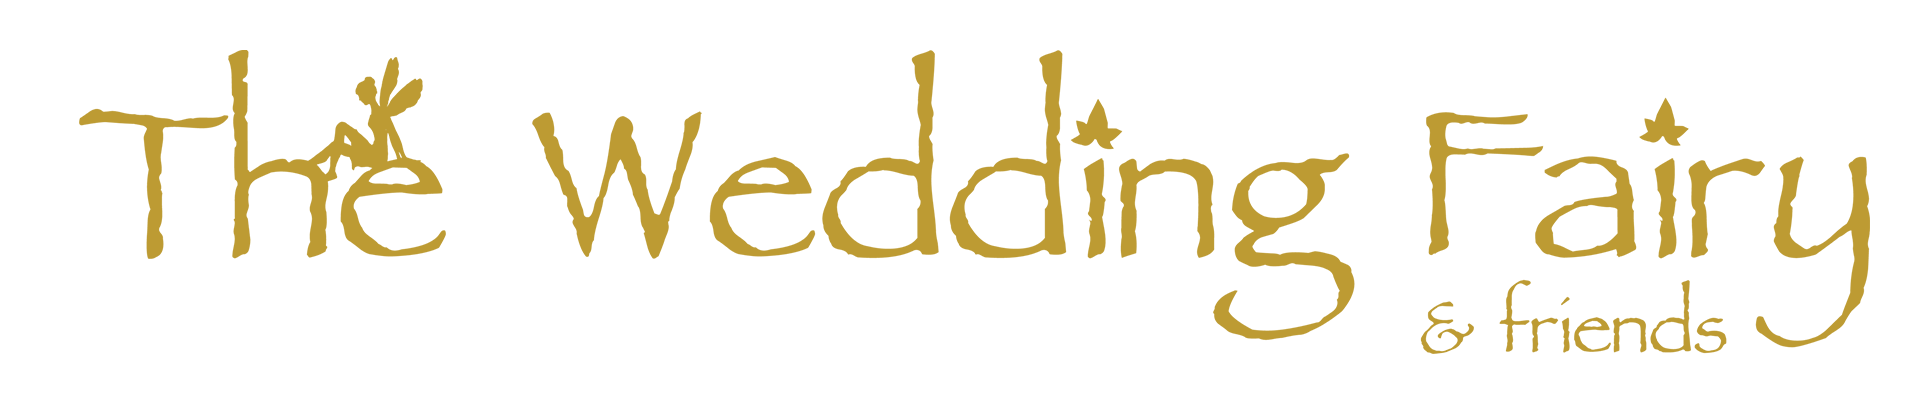 The Wedding Fairy and Friends logo - Gold